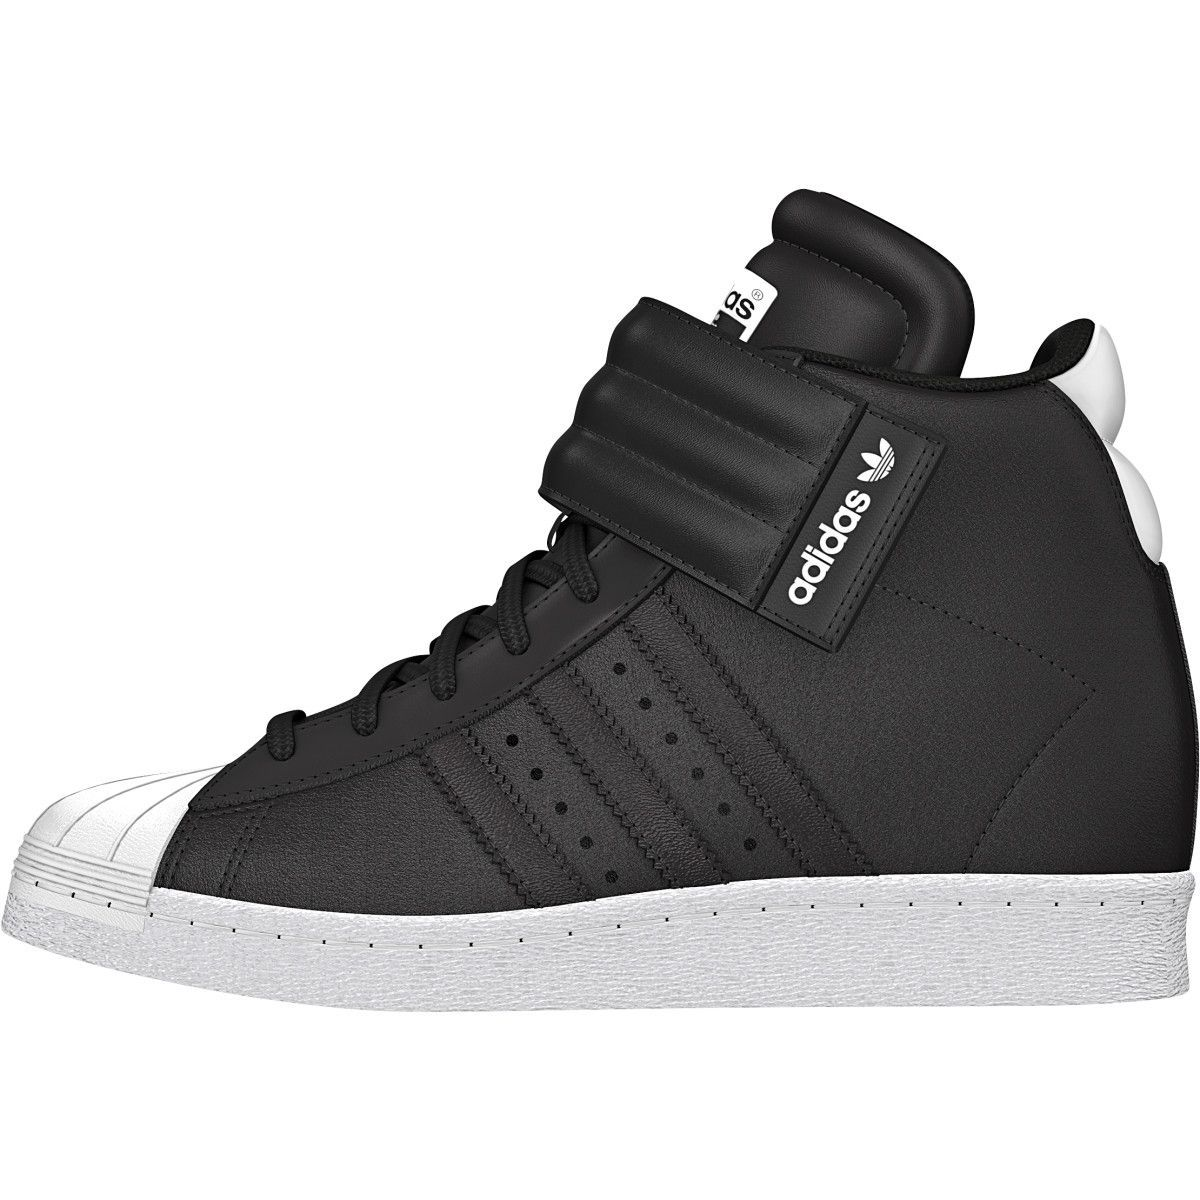 ADIDAS SUPERSTAR UP STRAP WOMENS SNEAKERS ...